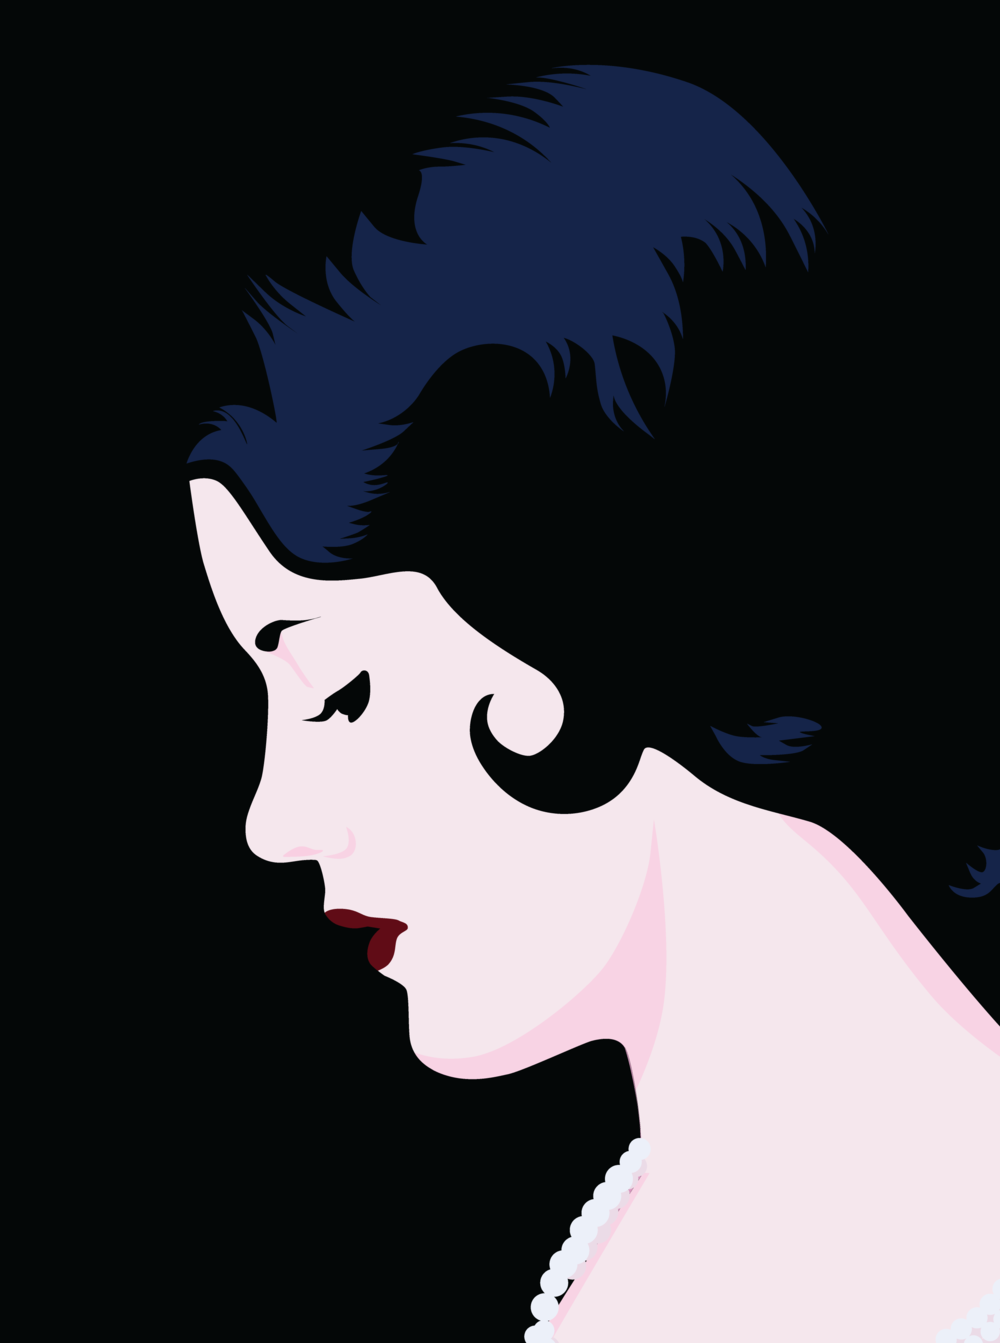 Woman with Pearls Illustration Detail 1.png